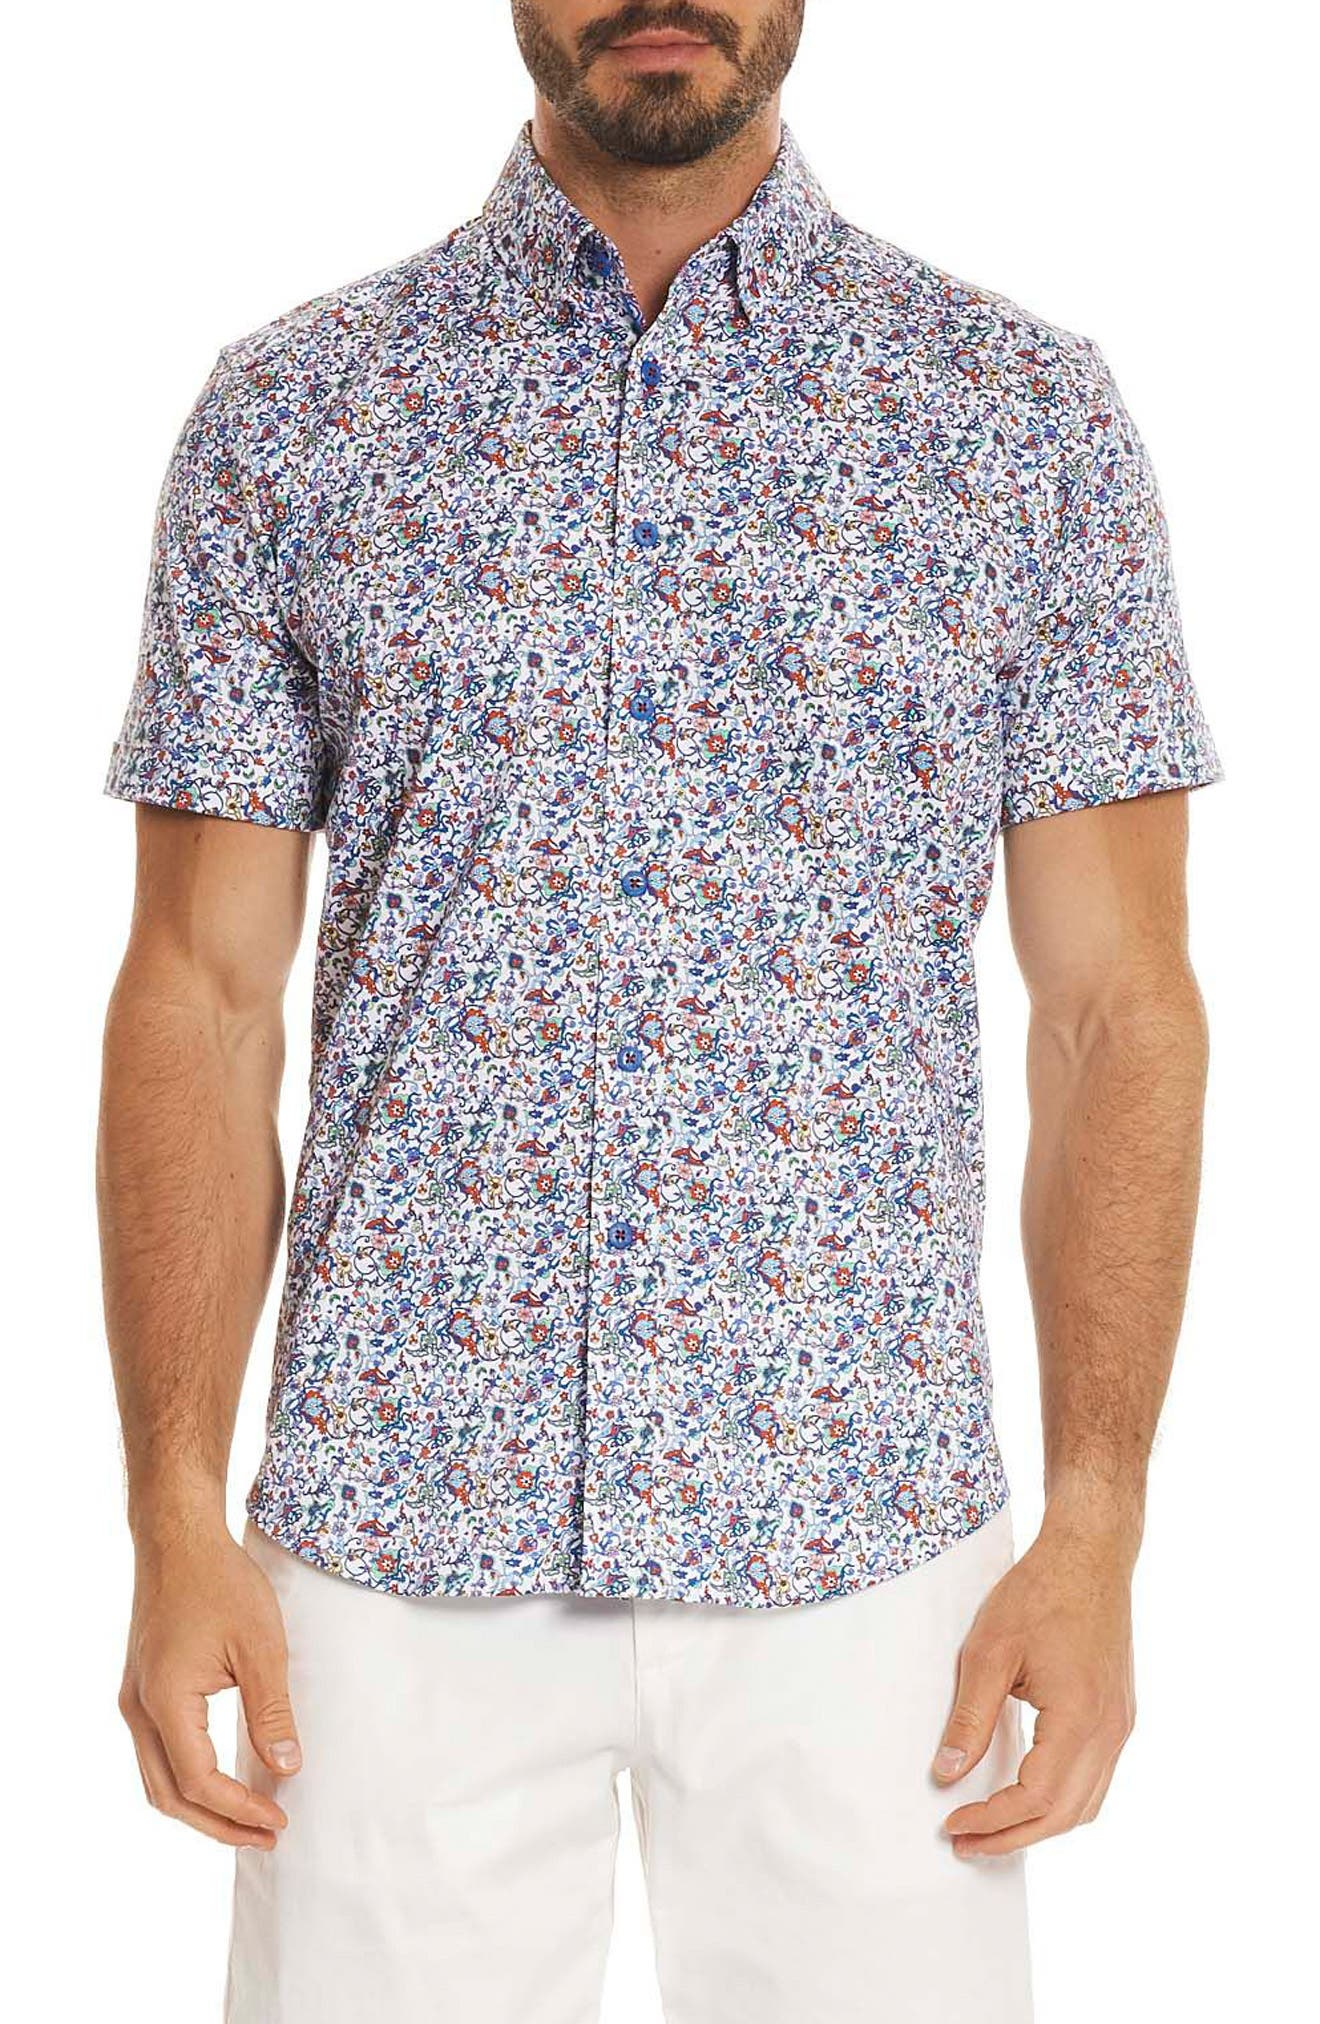 Moses Tailored Fit Print Sport Shirt,                             Main thumbnail 1, color,                             Multi